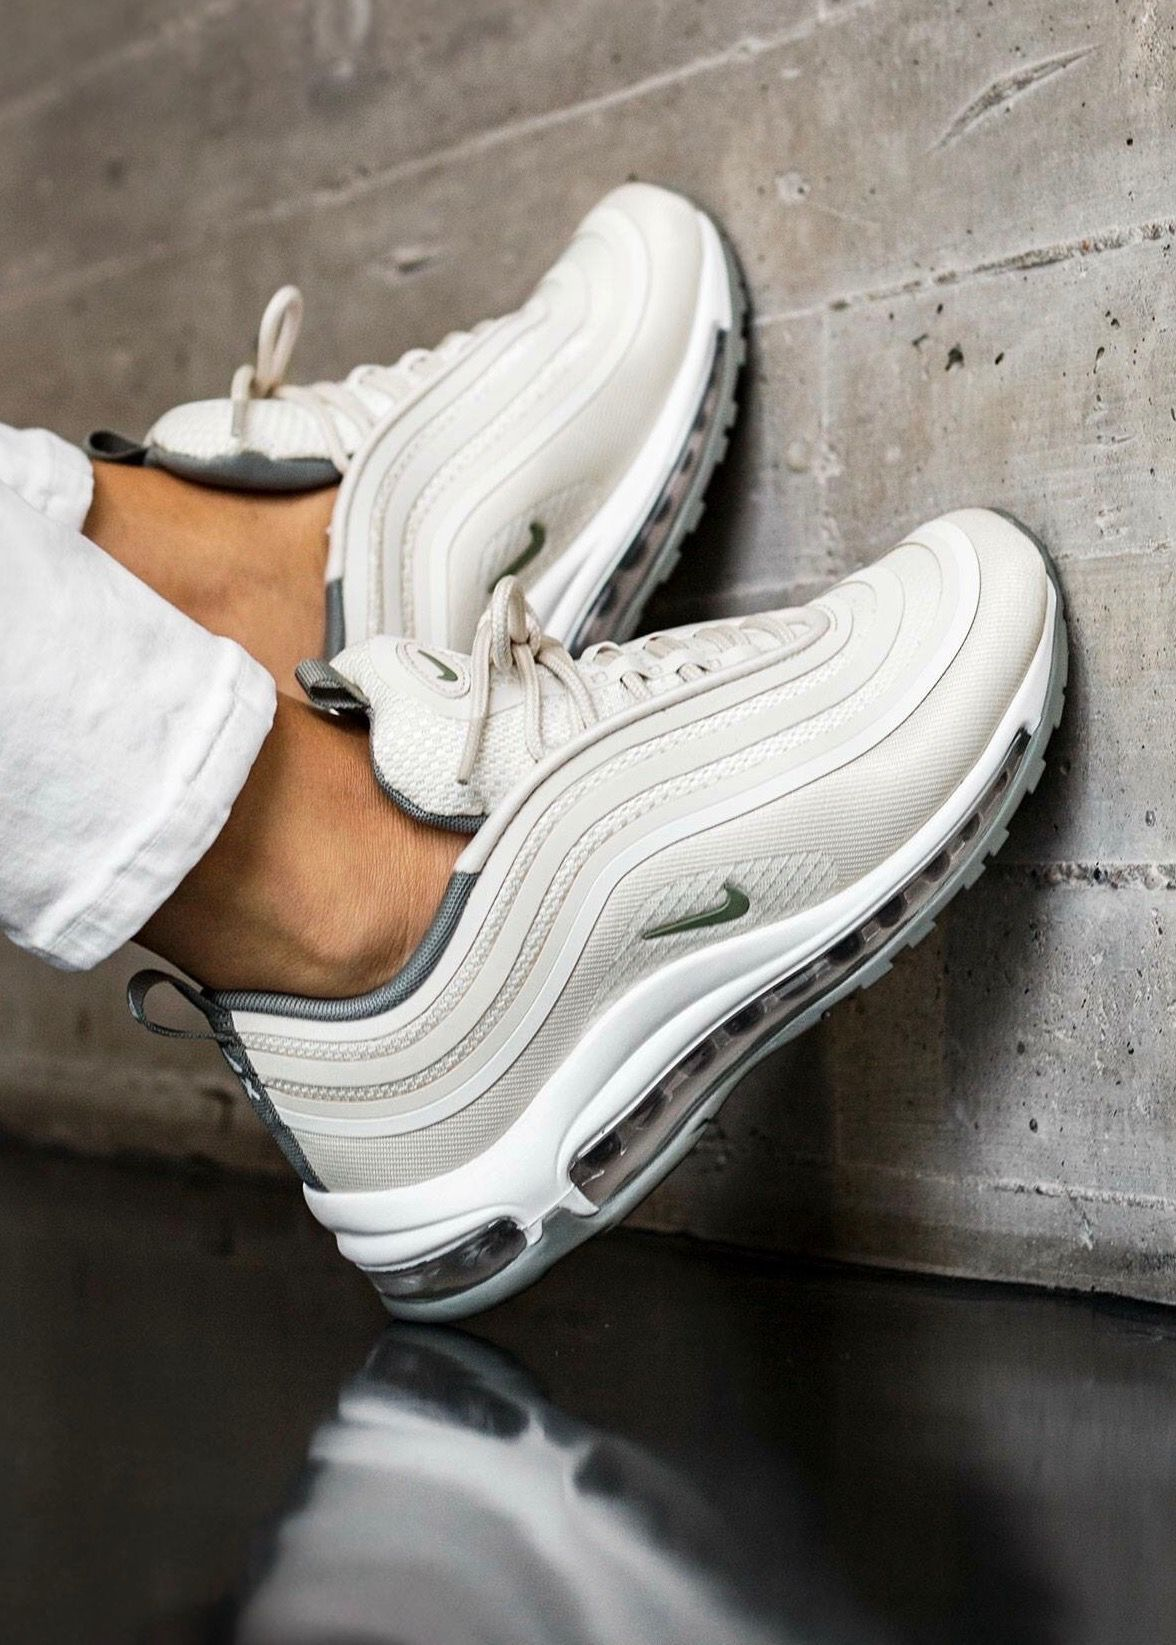 wholesale dealer 554b9 53f91 Nike Air Max 97 Ultra httpstwitter.comgmsingin1status